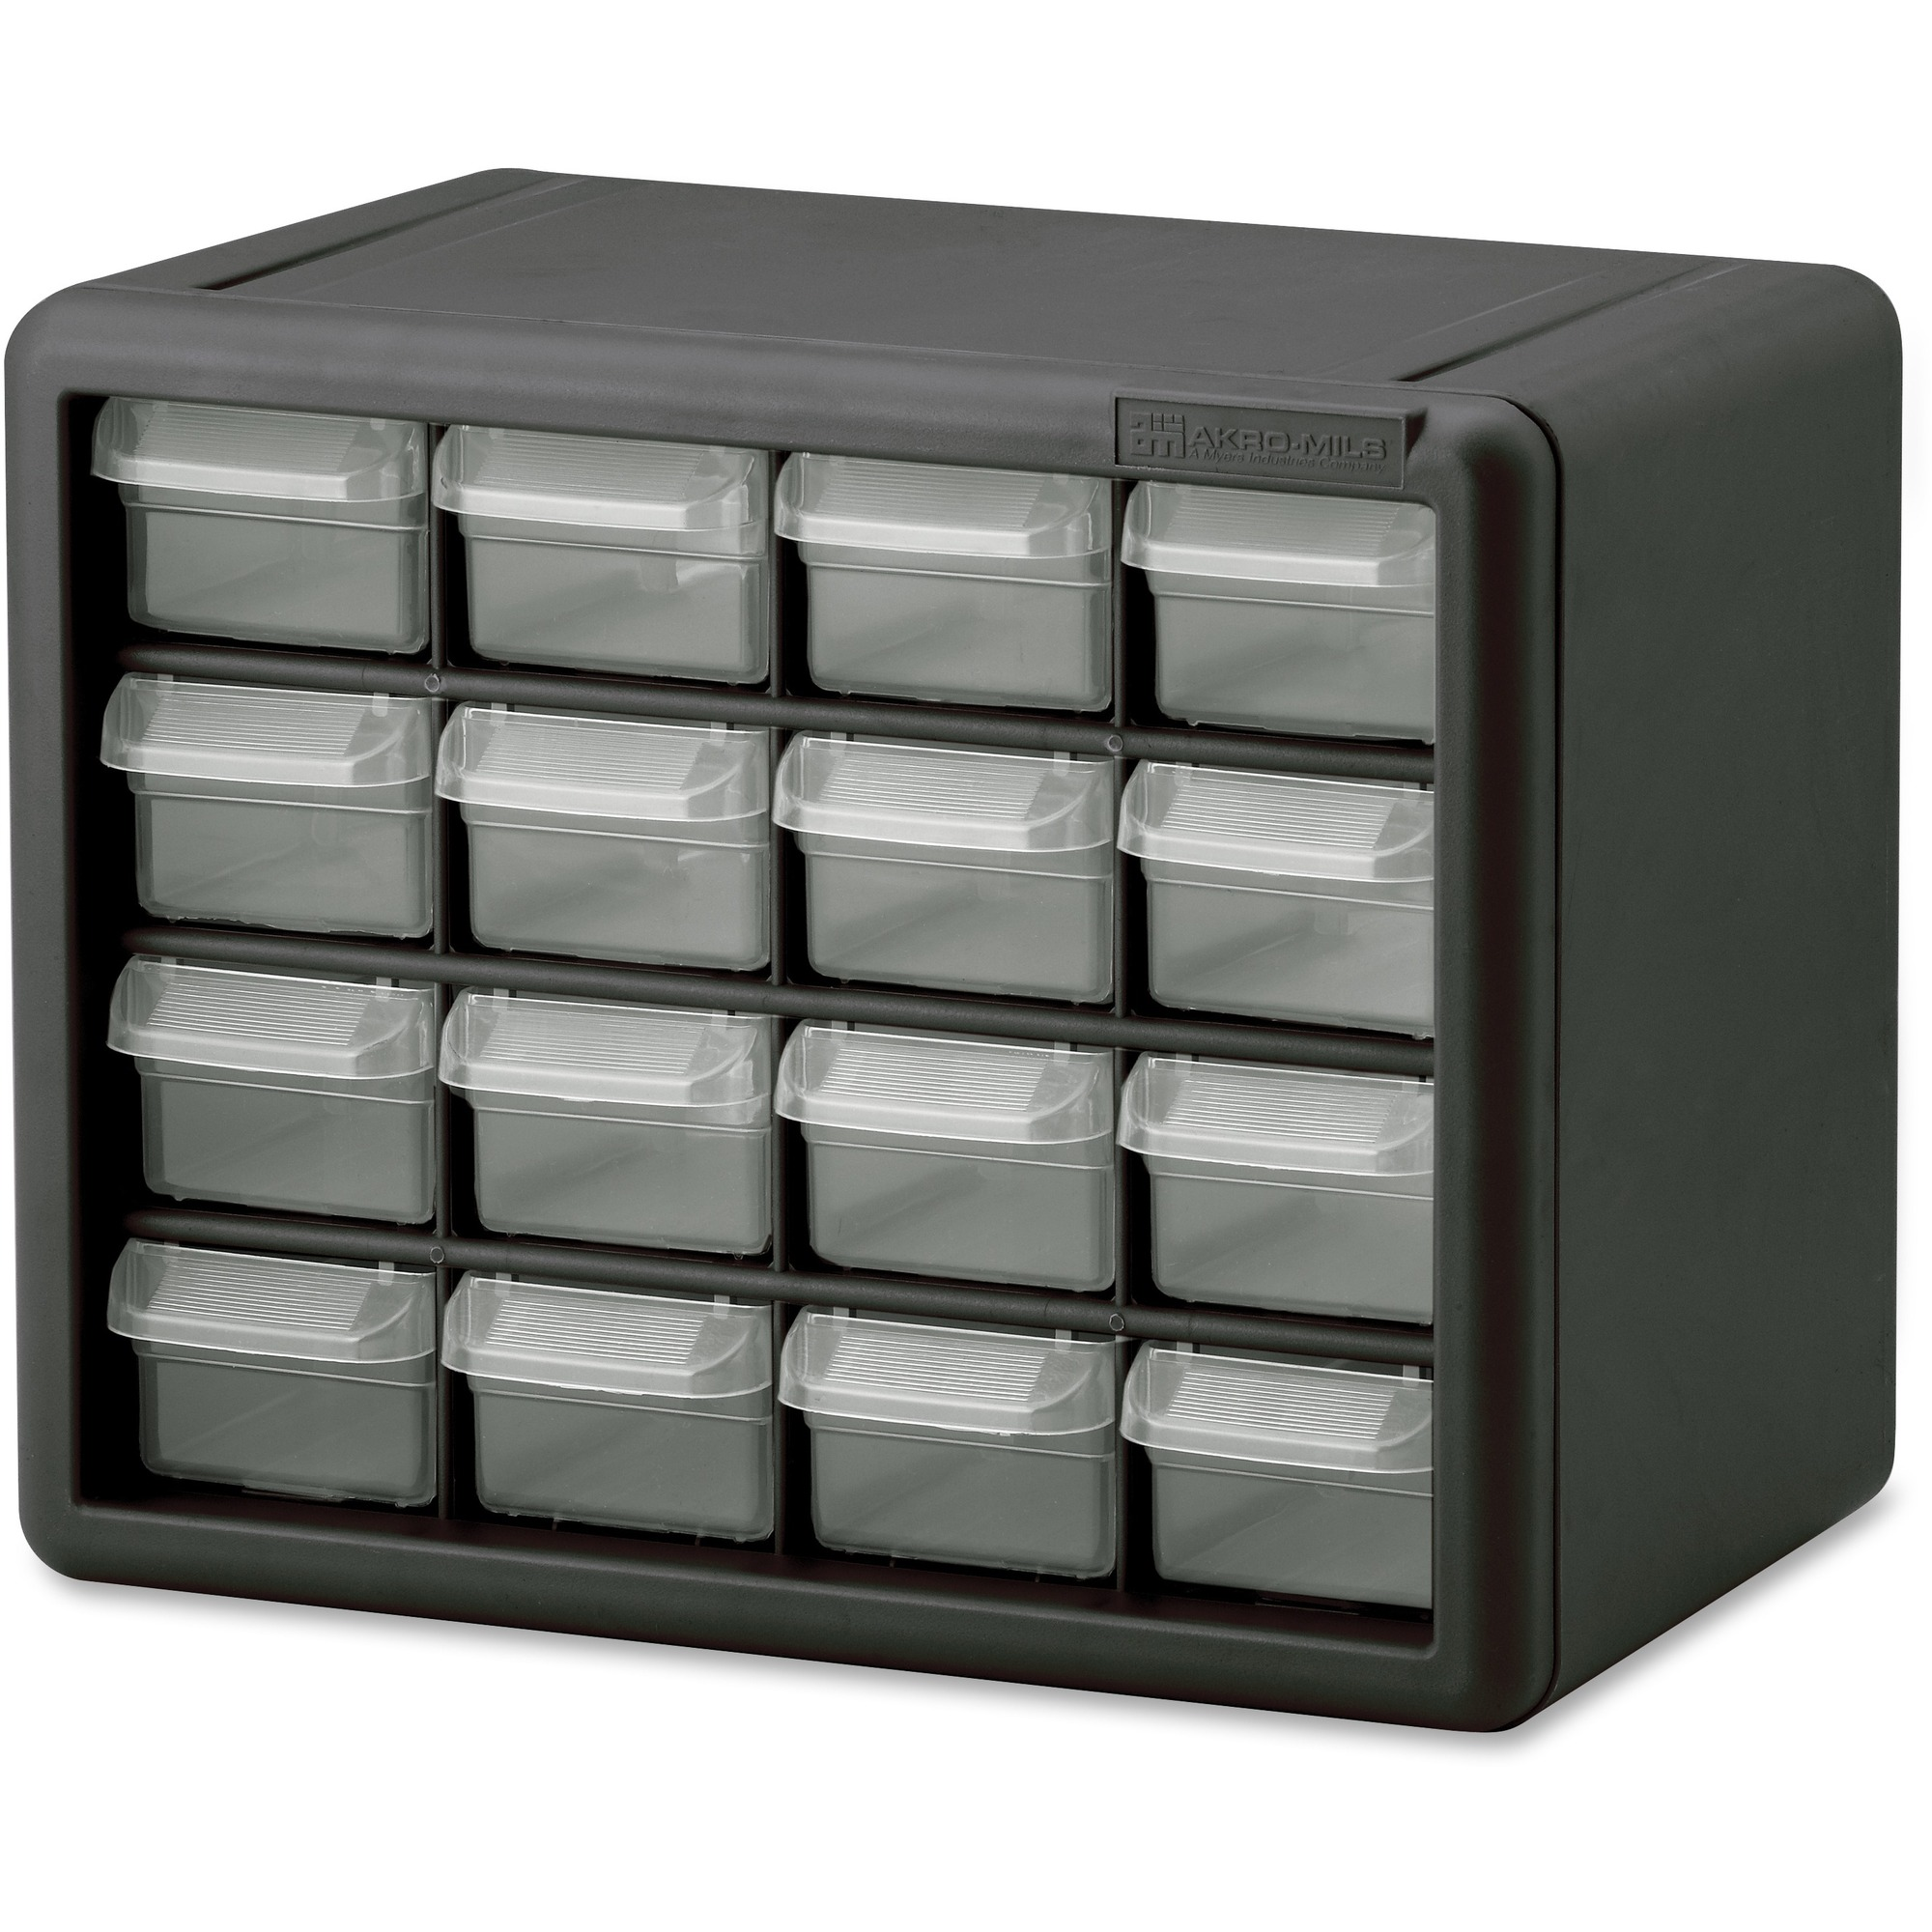 Image for Akro-mils / Myers Industries, Inc Akro-mils 16-drawer Plastic Storage Cabinet - 16 Drawer(S) - 8.5 Height X 6.4 Width - Floor, Wall Mountable - Black, Clear - Polymer, Plastic - 1EACH